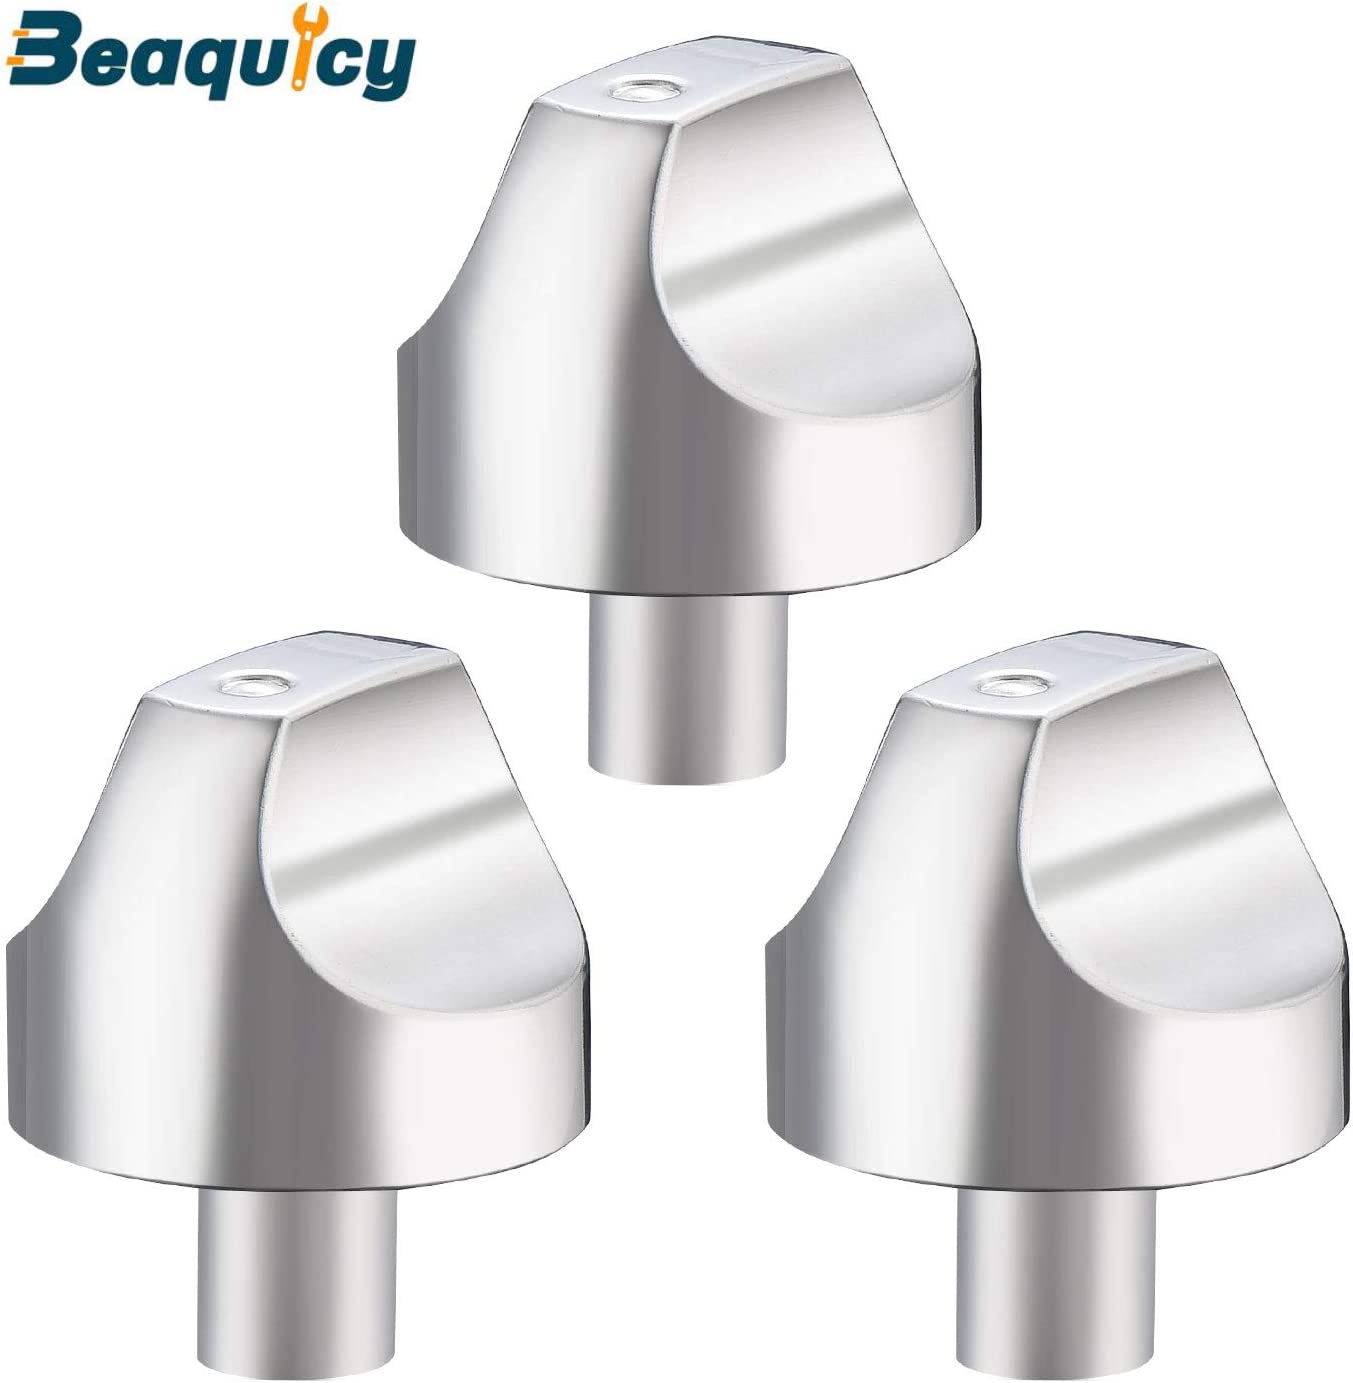 WB03X32194 WB03T10329 Cooktop Burner Knob Kit by Beaquicy - Stainless Steel Range Burner Control Knob 3 Pack Compatible with GE Replace Part Number WB03X25889,4920893